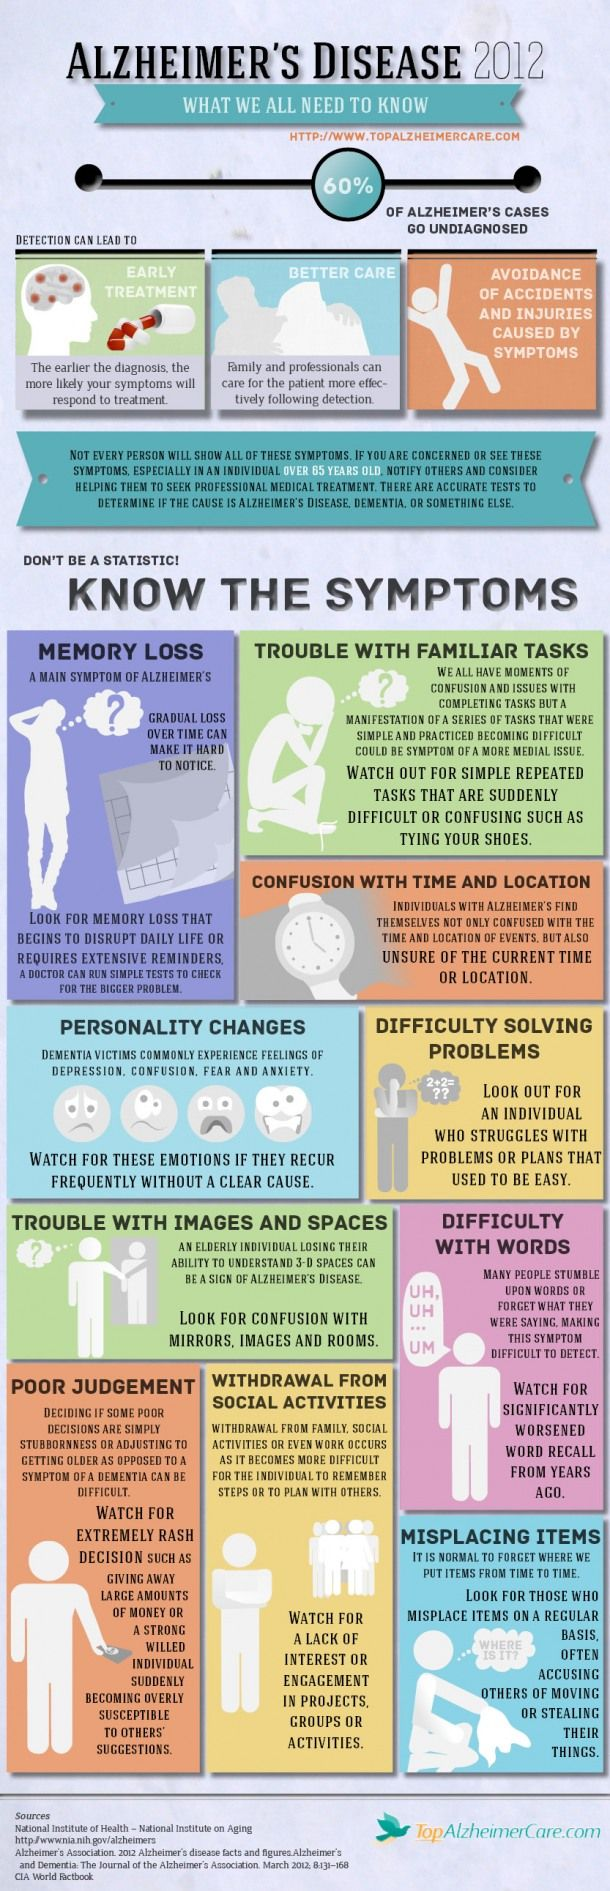 Alzheimers Infographic – Re-pinned by ottoolkit.com your source for geriatric occupational therapy resources.S Helsper